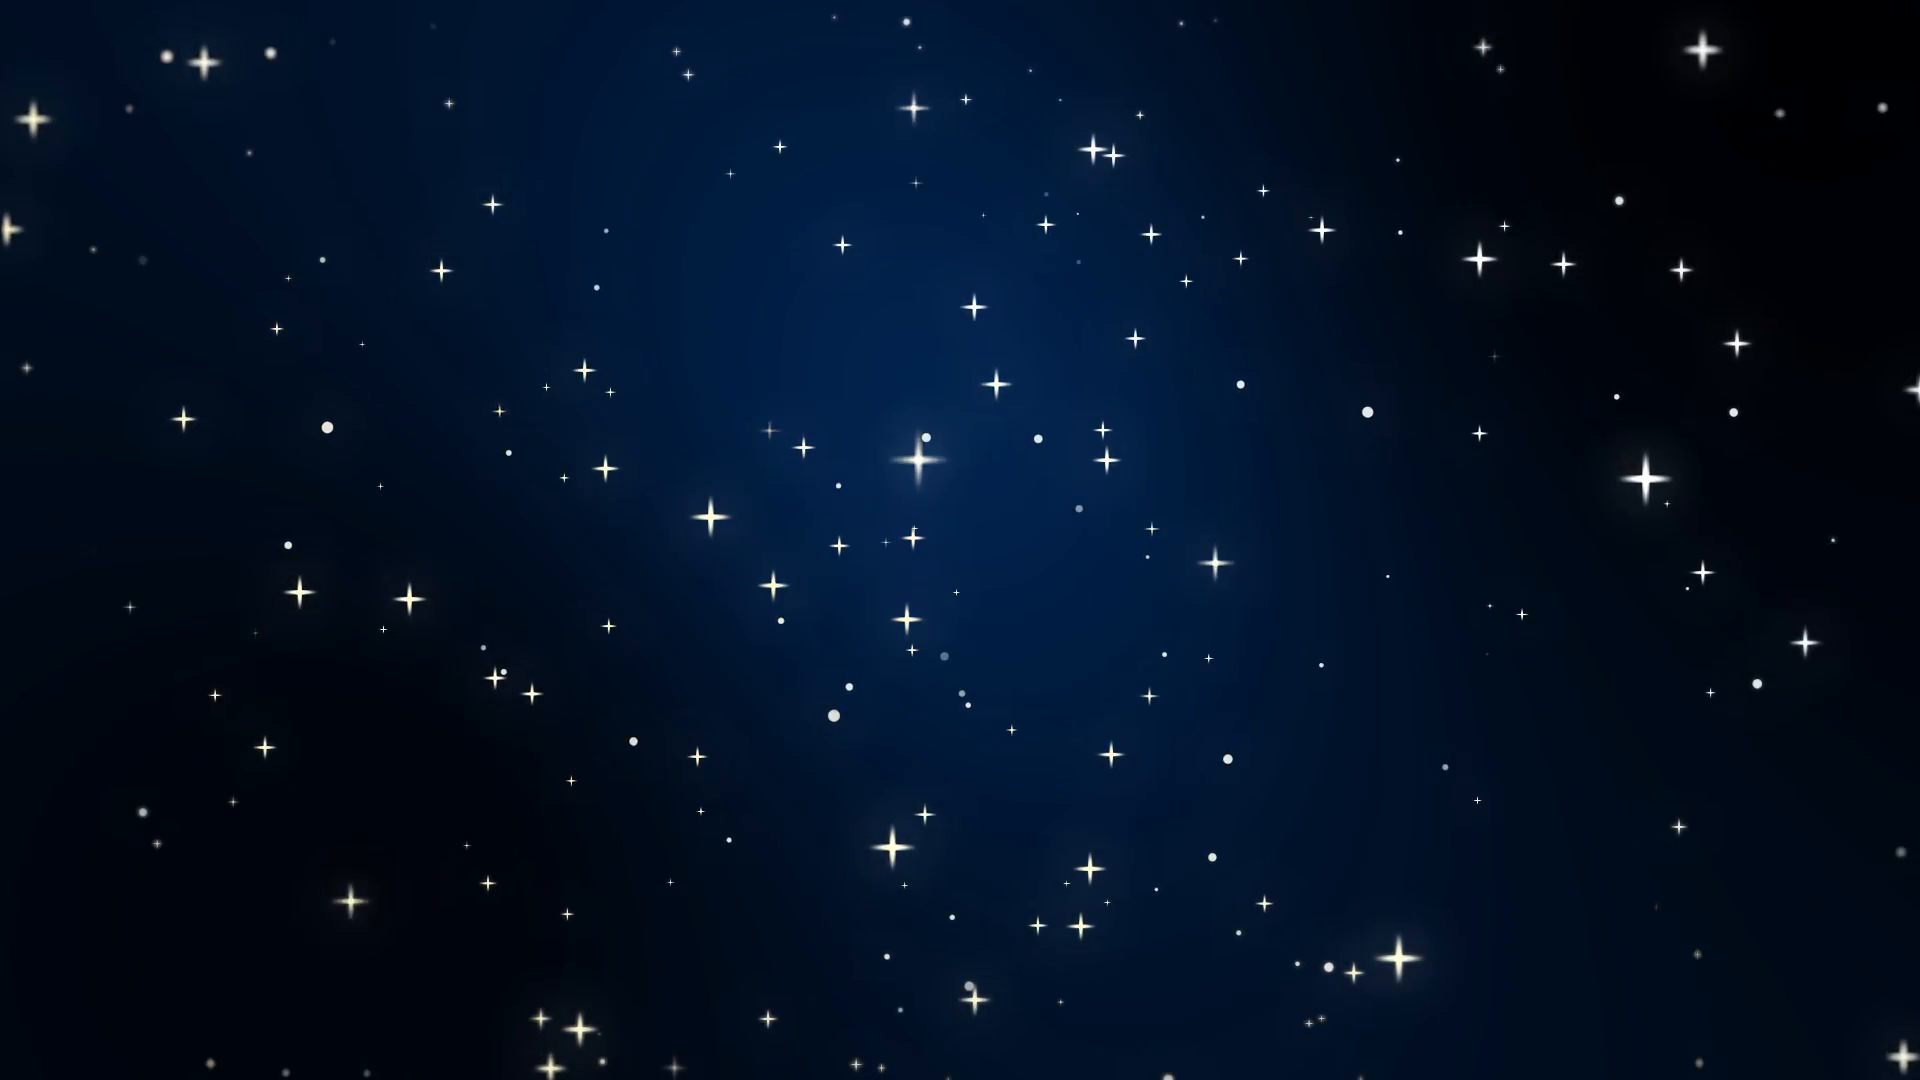 night-sky-full-of-stars-animation-made-of-sparkly-light-particles